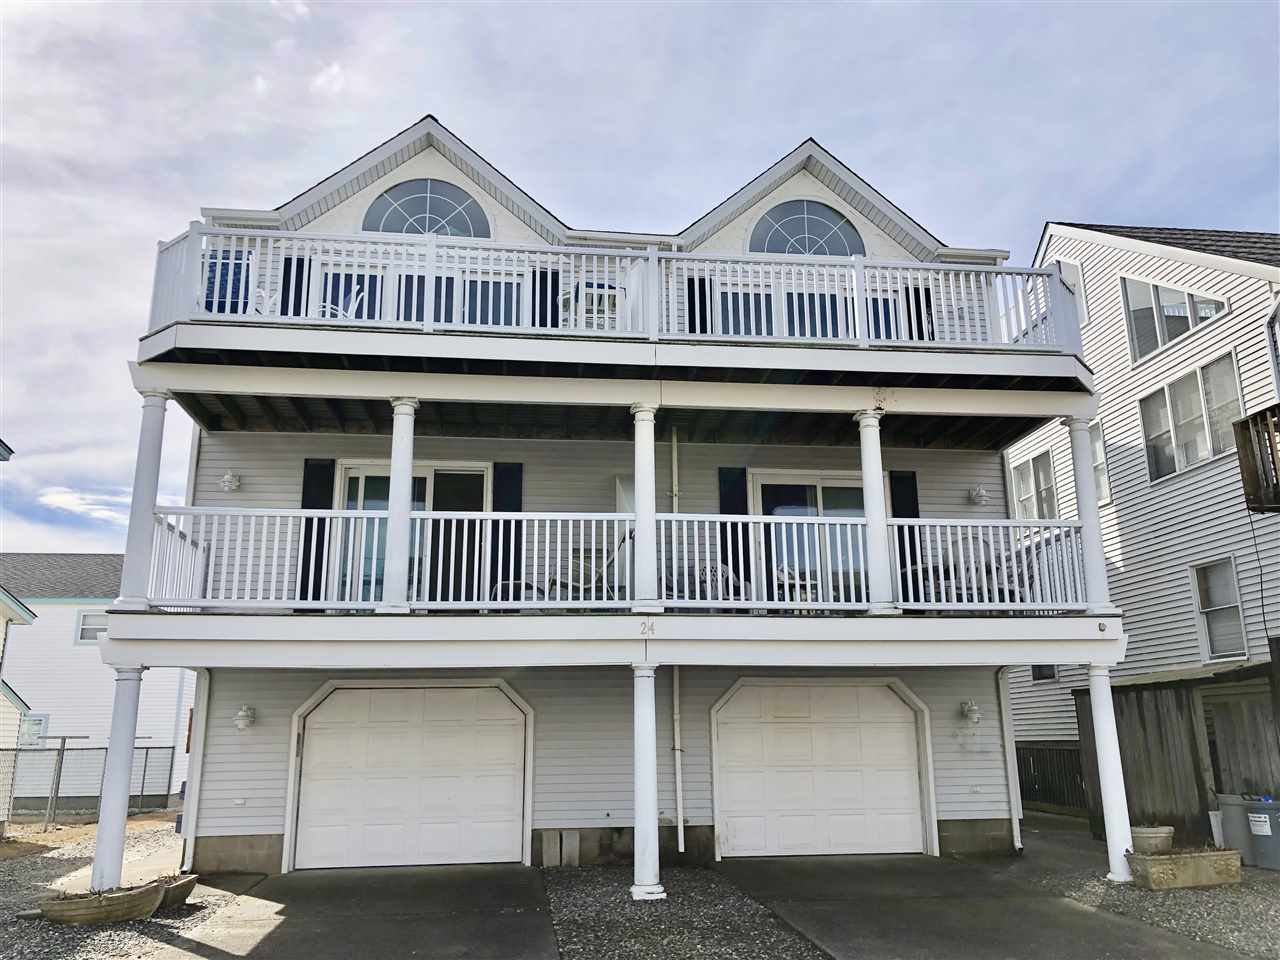 24 33rd, Sea Isle City